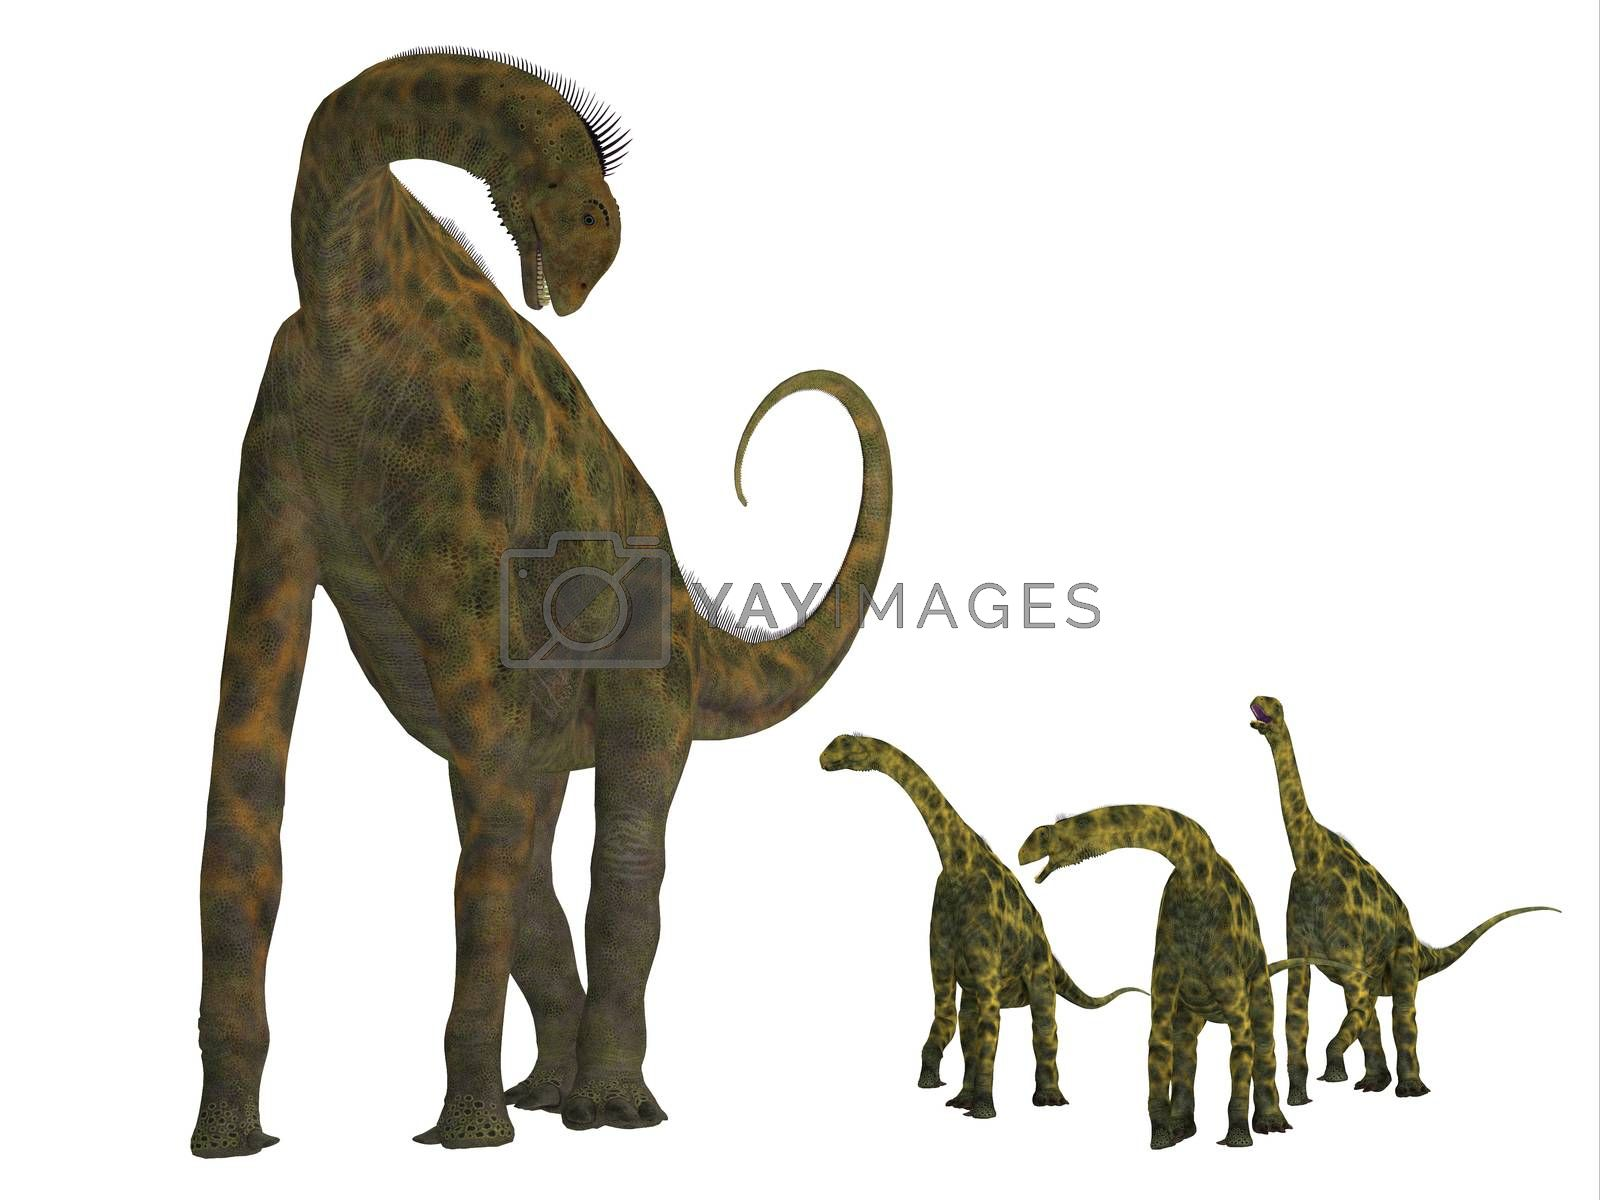 Atlasaurus was a large herbivorous dinosaur that lived in the Jurassic Period of Morocco, North Africa.